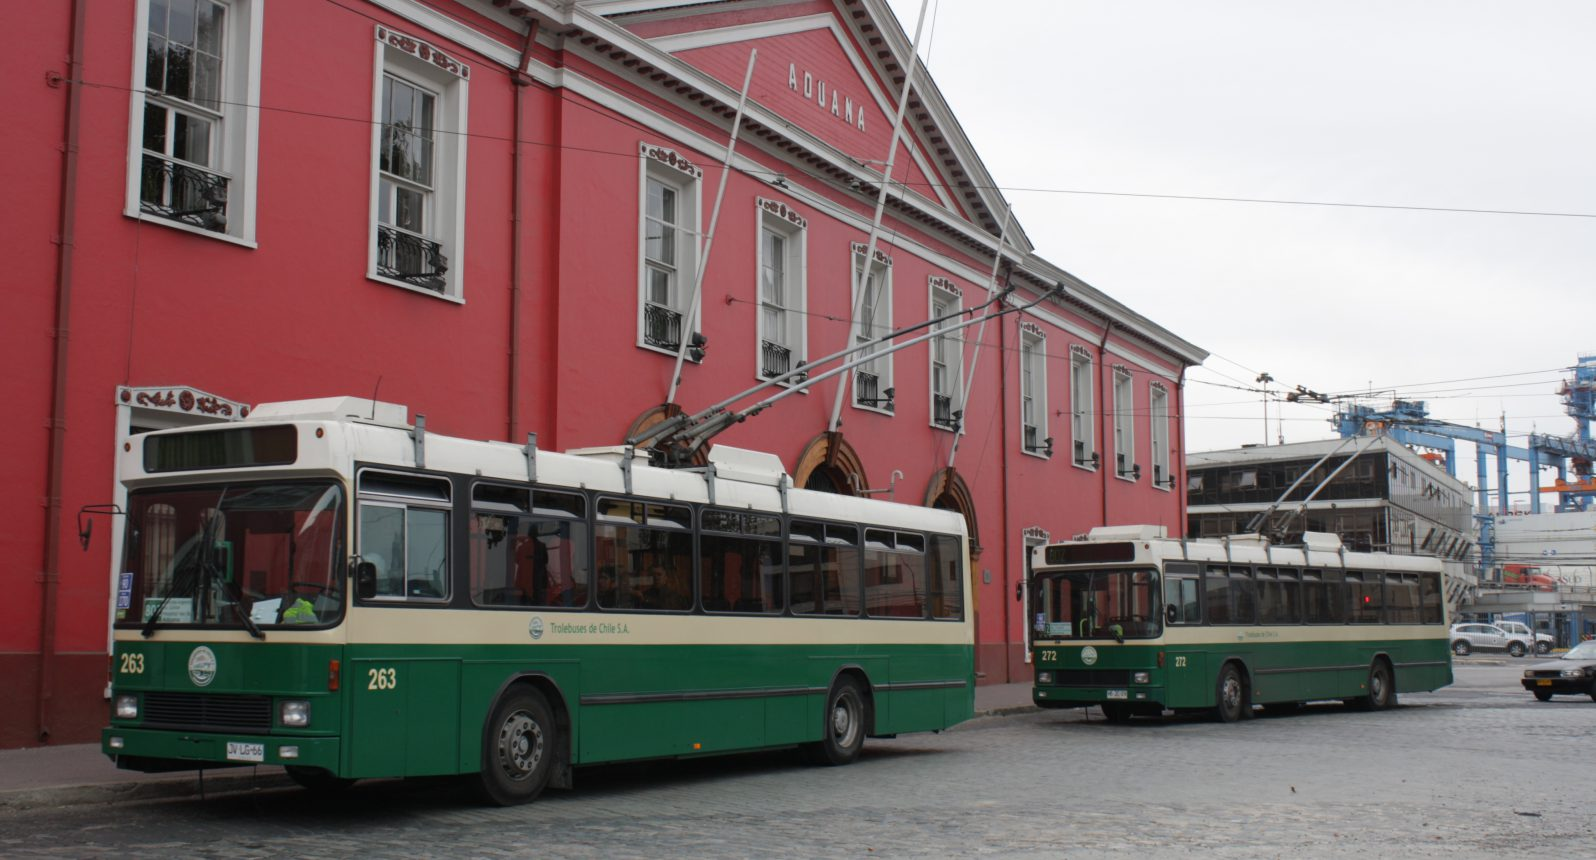 Trolley bus, , Valparaiso, Chile